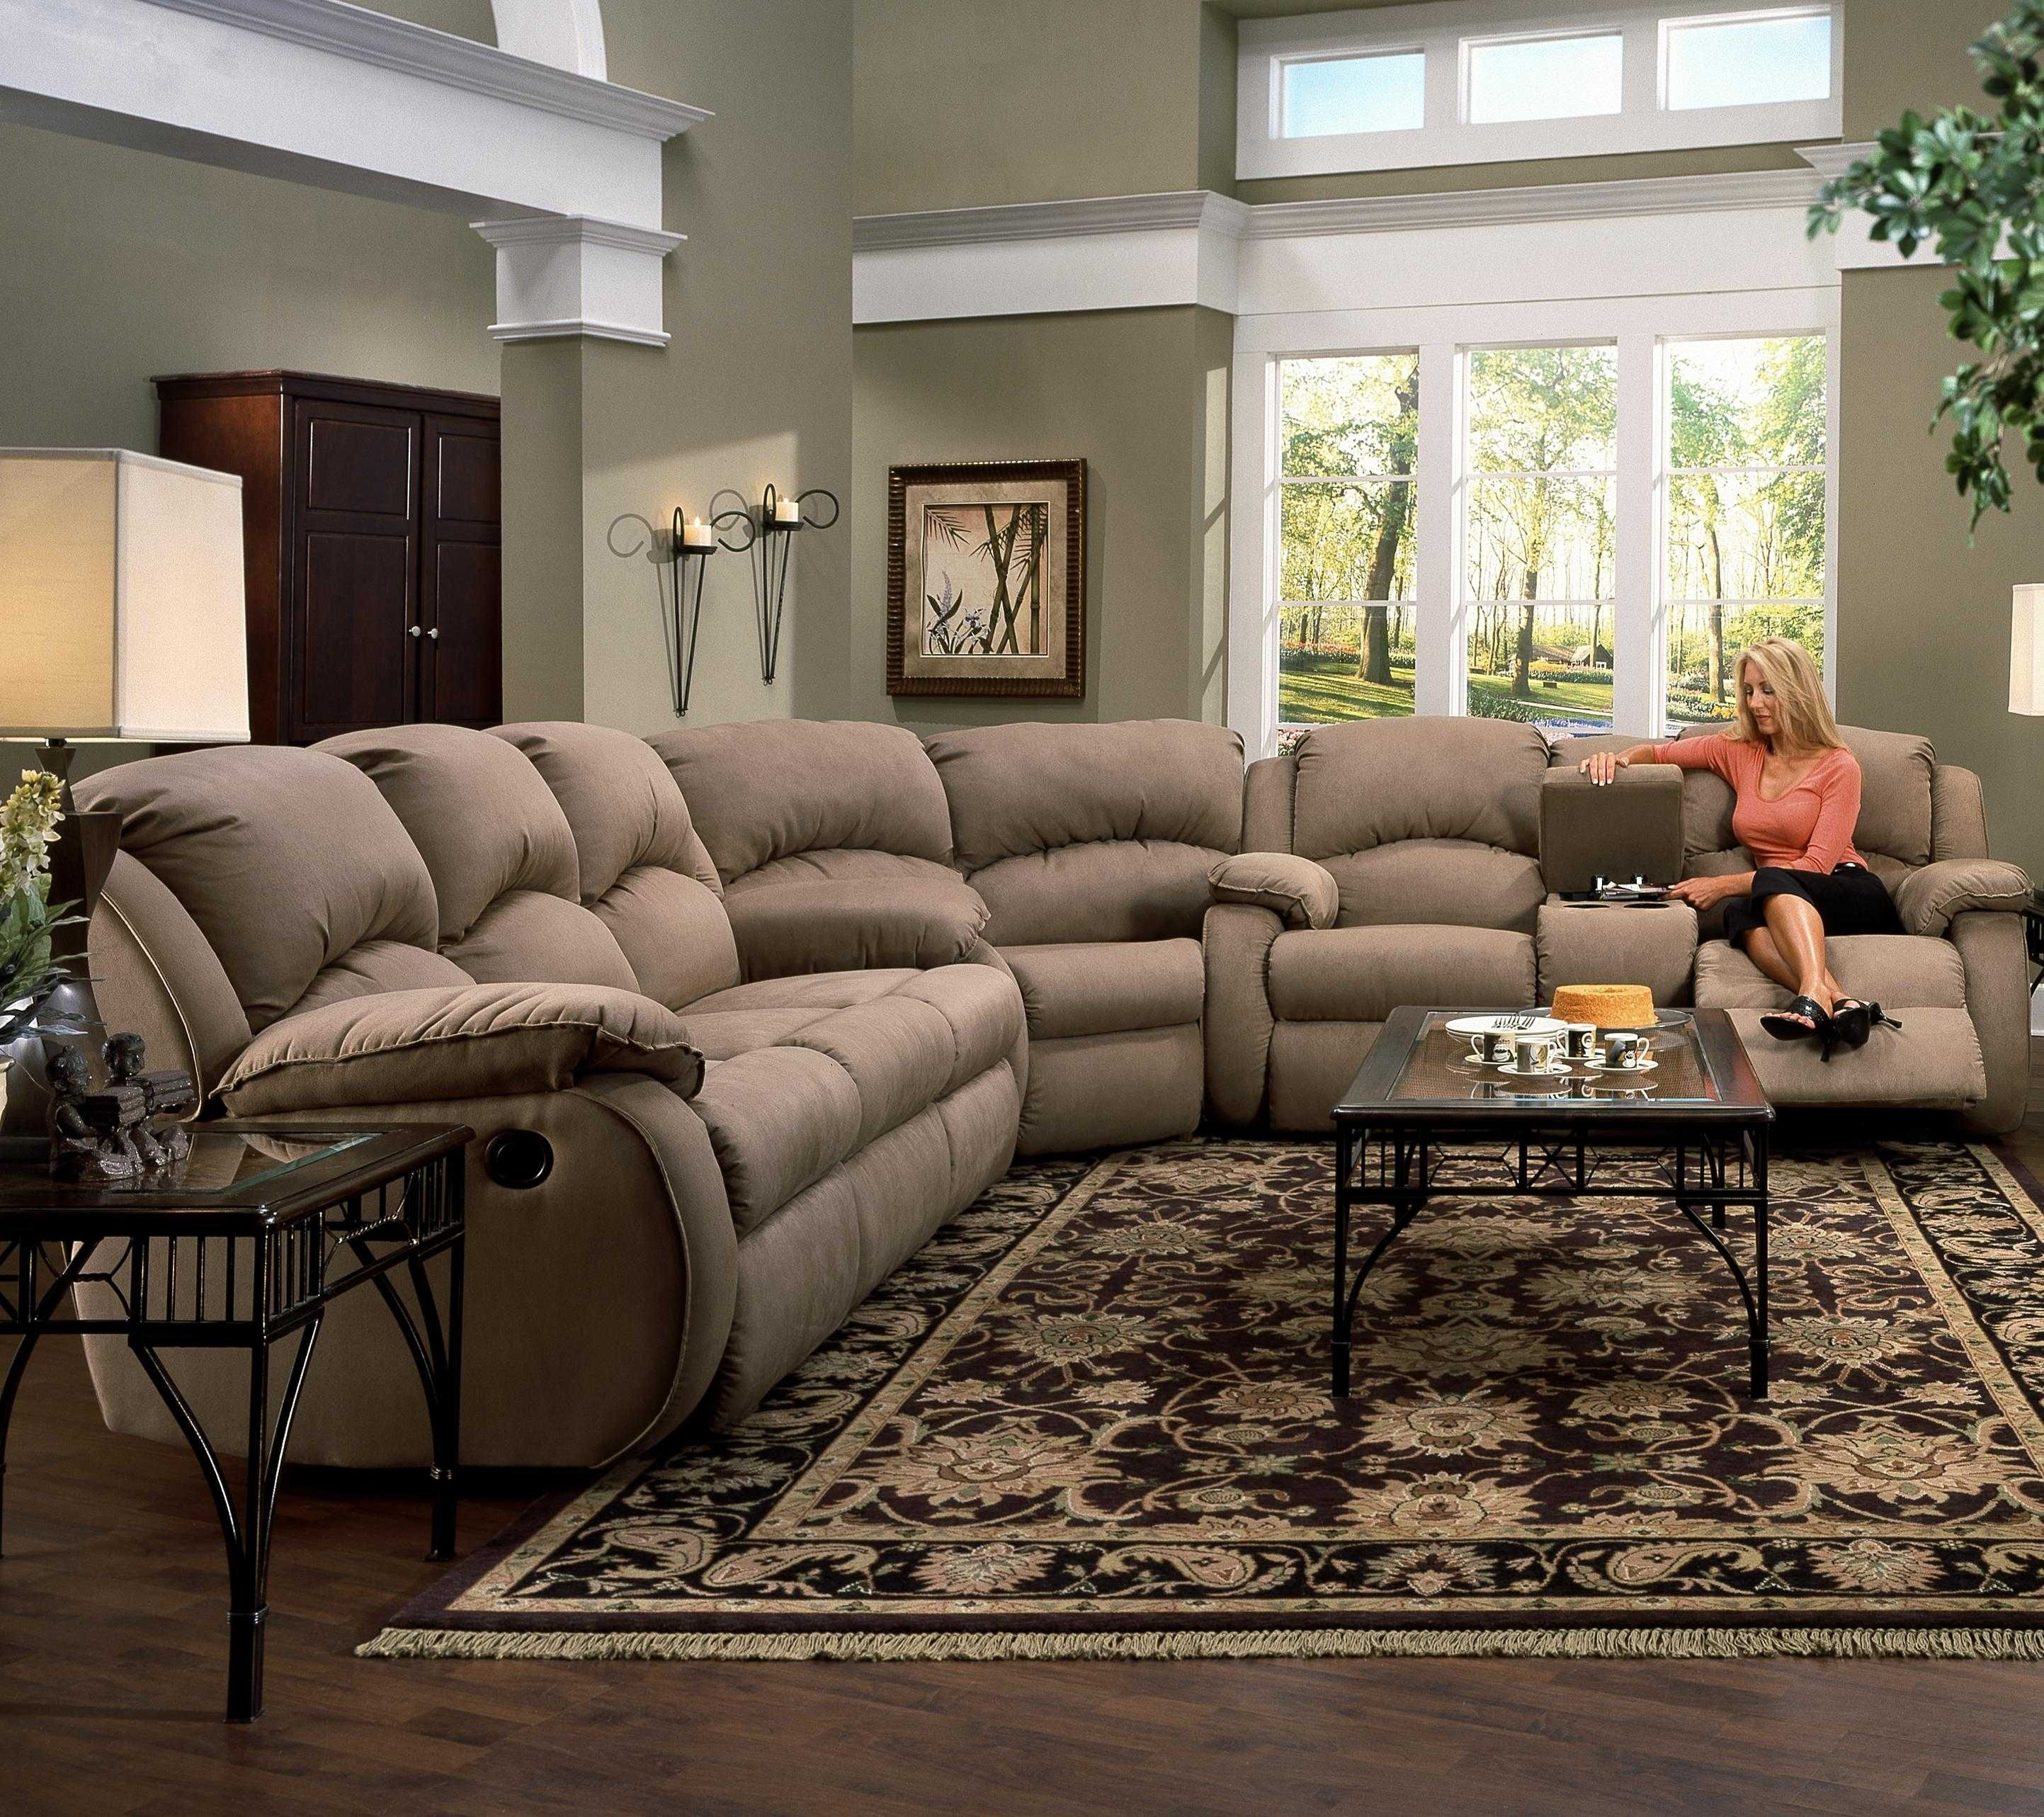 Sectional Sofas With Recliners And Cup Holders Sofa Set Clearance In Sectional Sofas With Cup Holders (View 7 of 10)